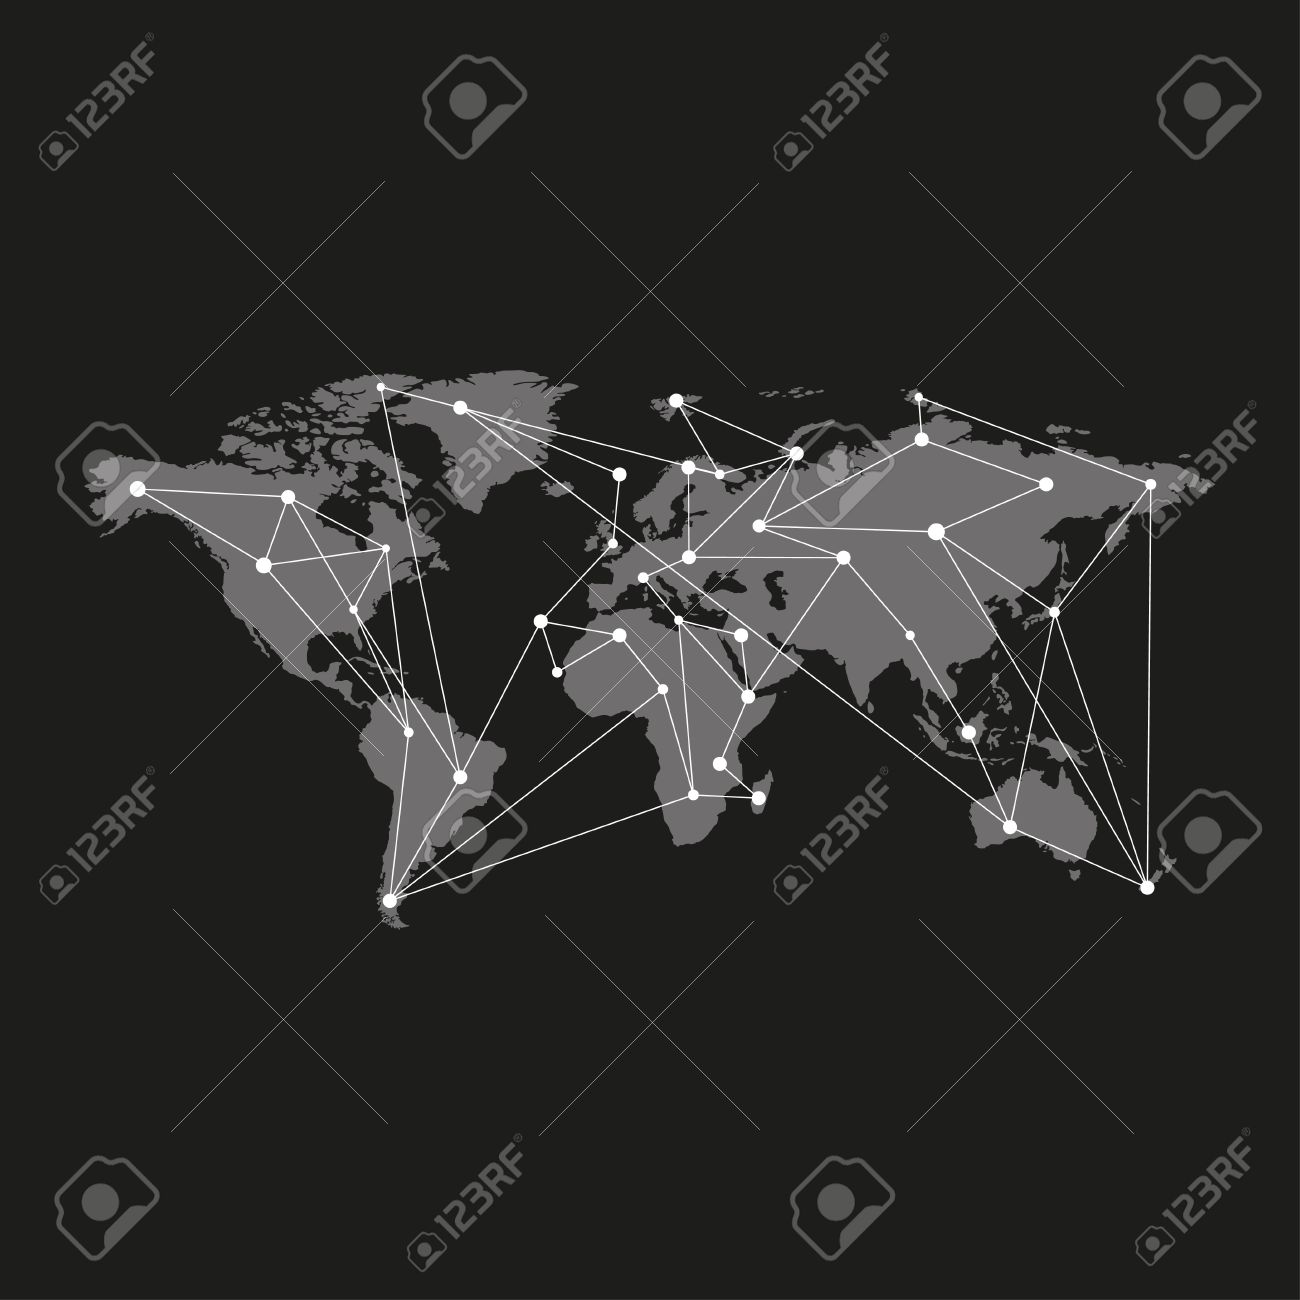 Blank grey similar world map isolated on black background blank grey similar world map isolated on black background monochrome world map template for website gumiabroncs Images